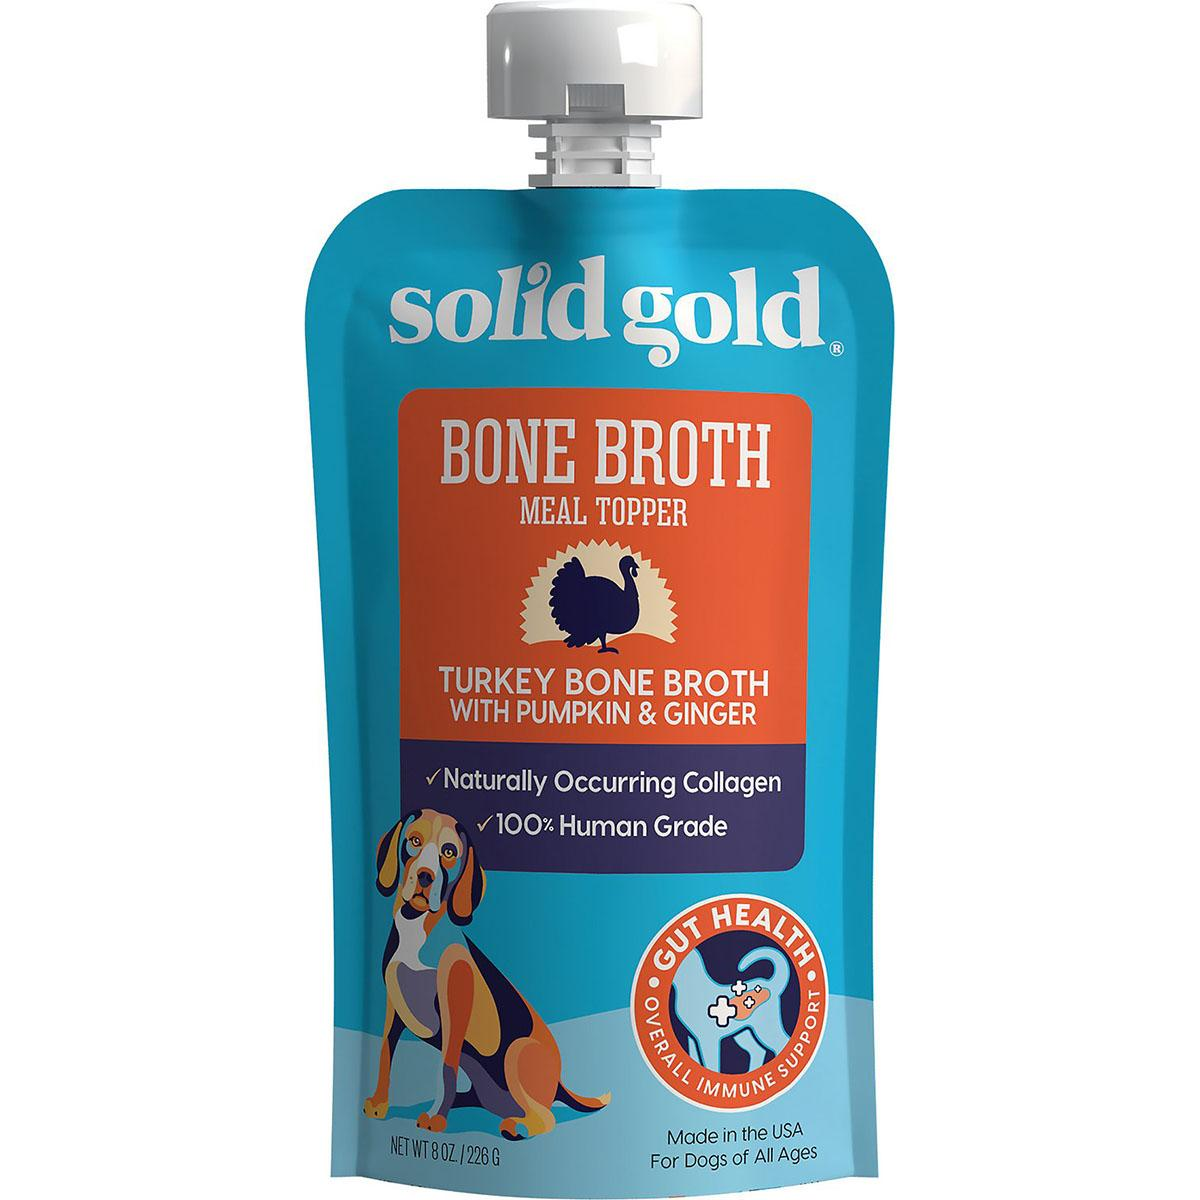 Solid Gold Turkey Bone Broth with Pumpkin & Ginger Dog Food Topper